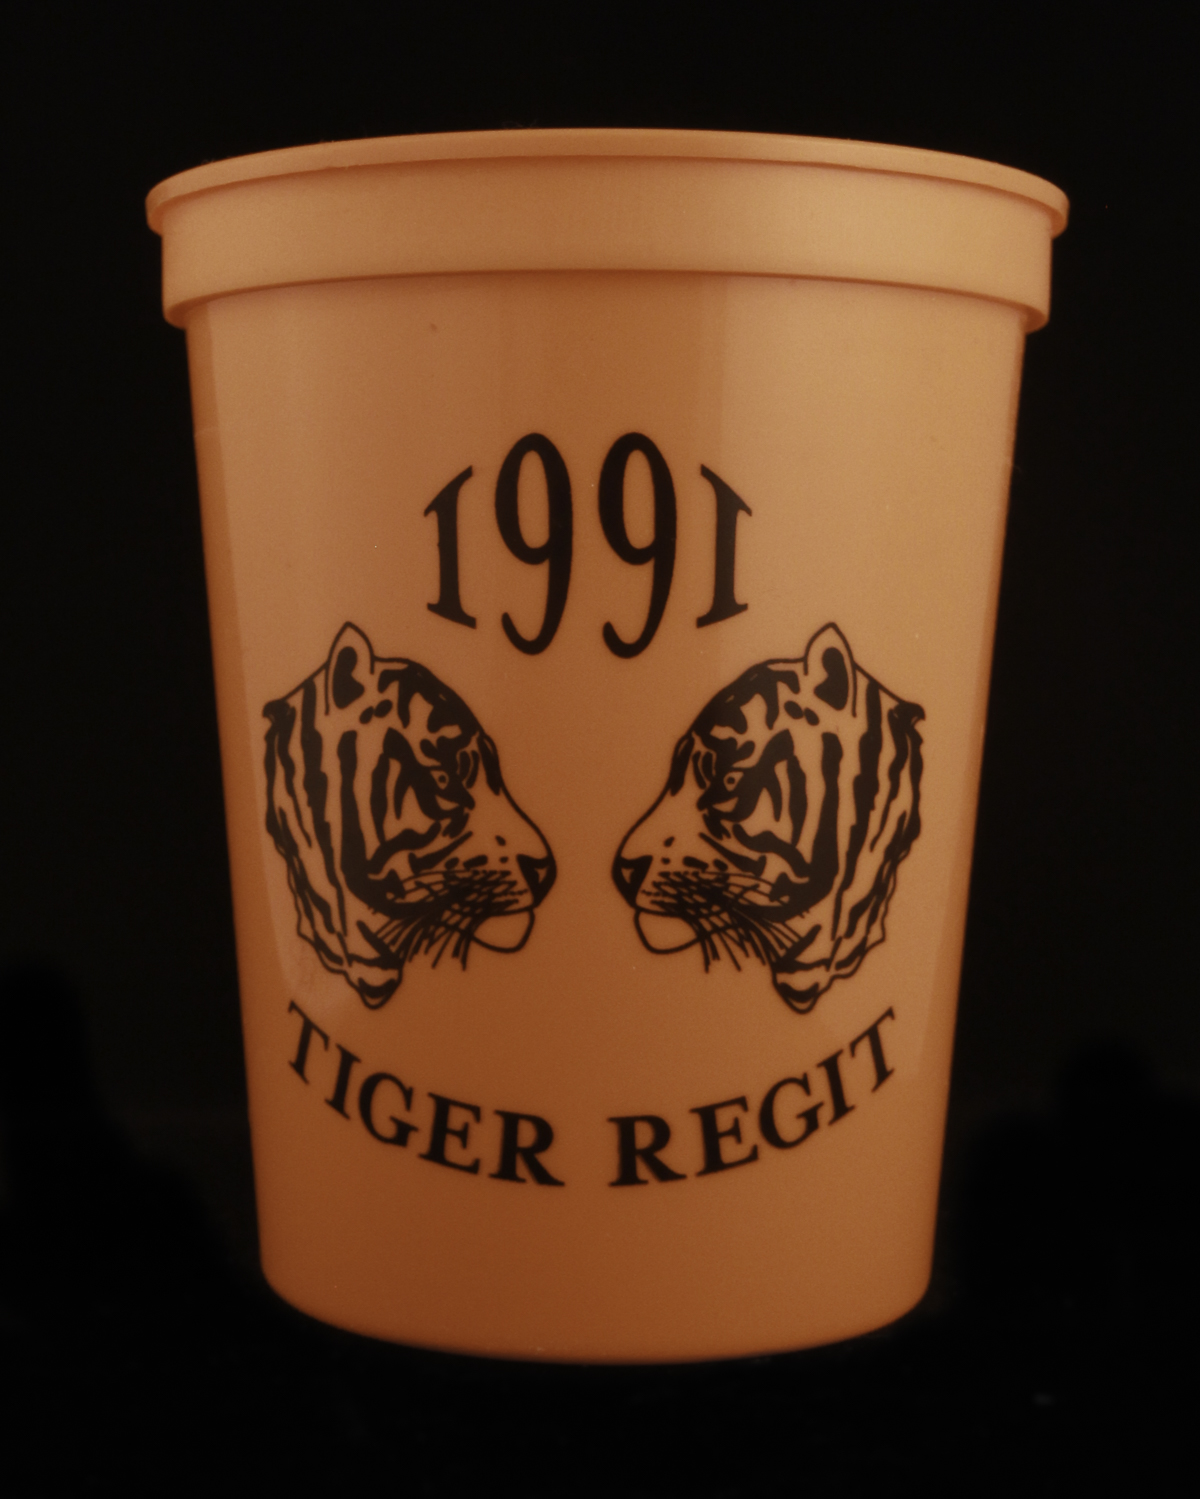 1991 Beer Cup 25th Reunion